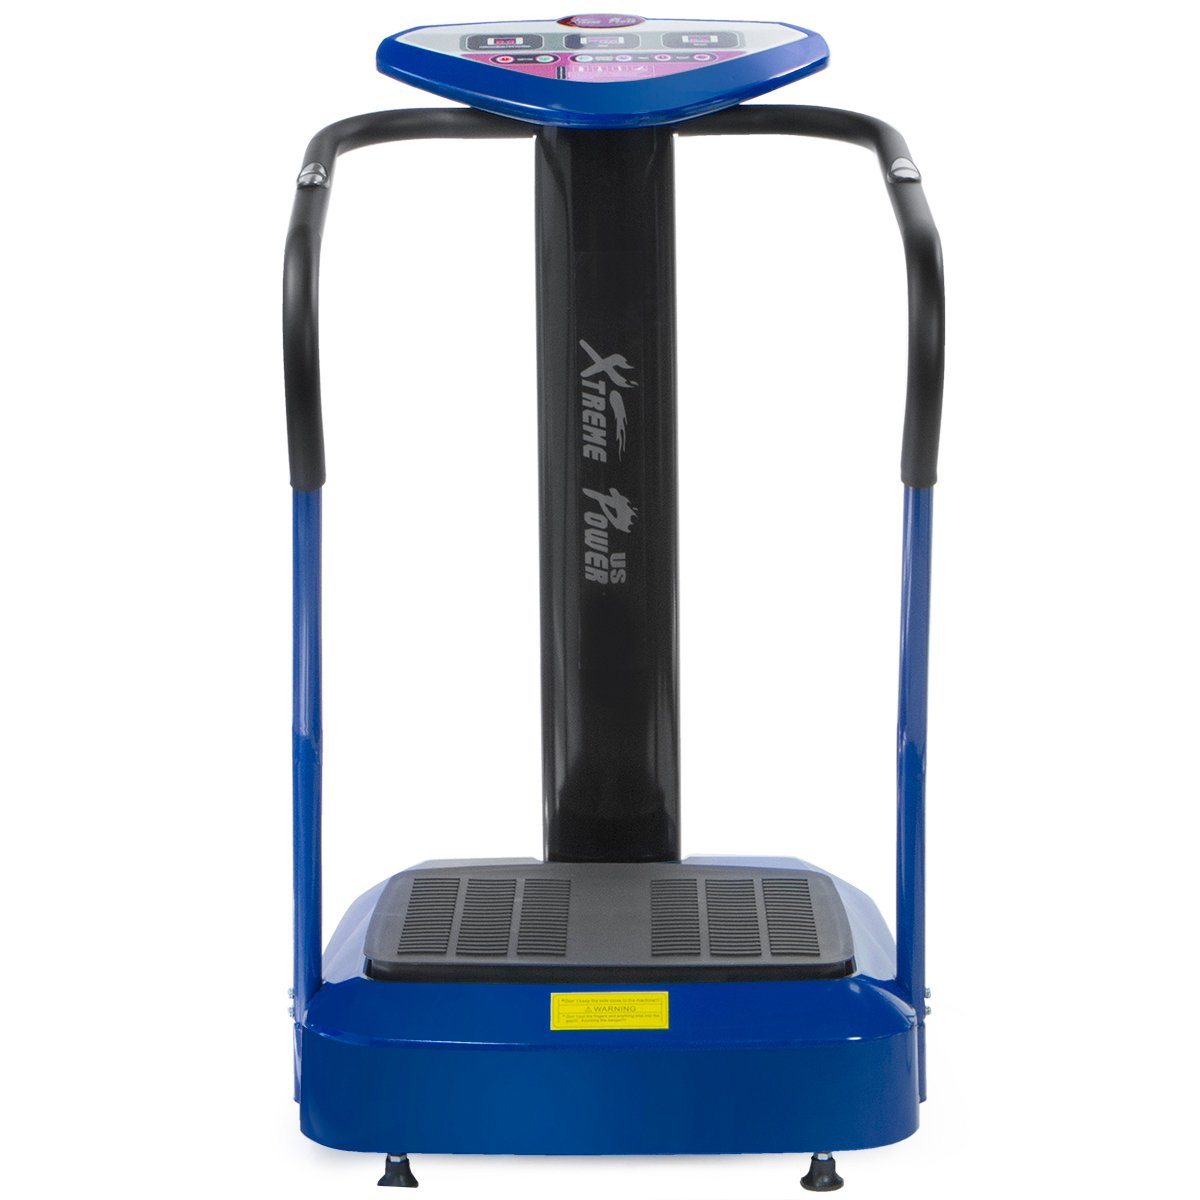 XtremepowerUS 2000W Slim Full Body Vibration Platform Exercise Crazy Fit Machine (Blue) by XtremepowerUS (Image #1)